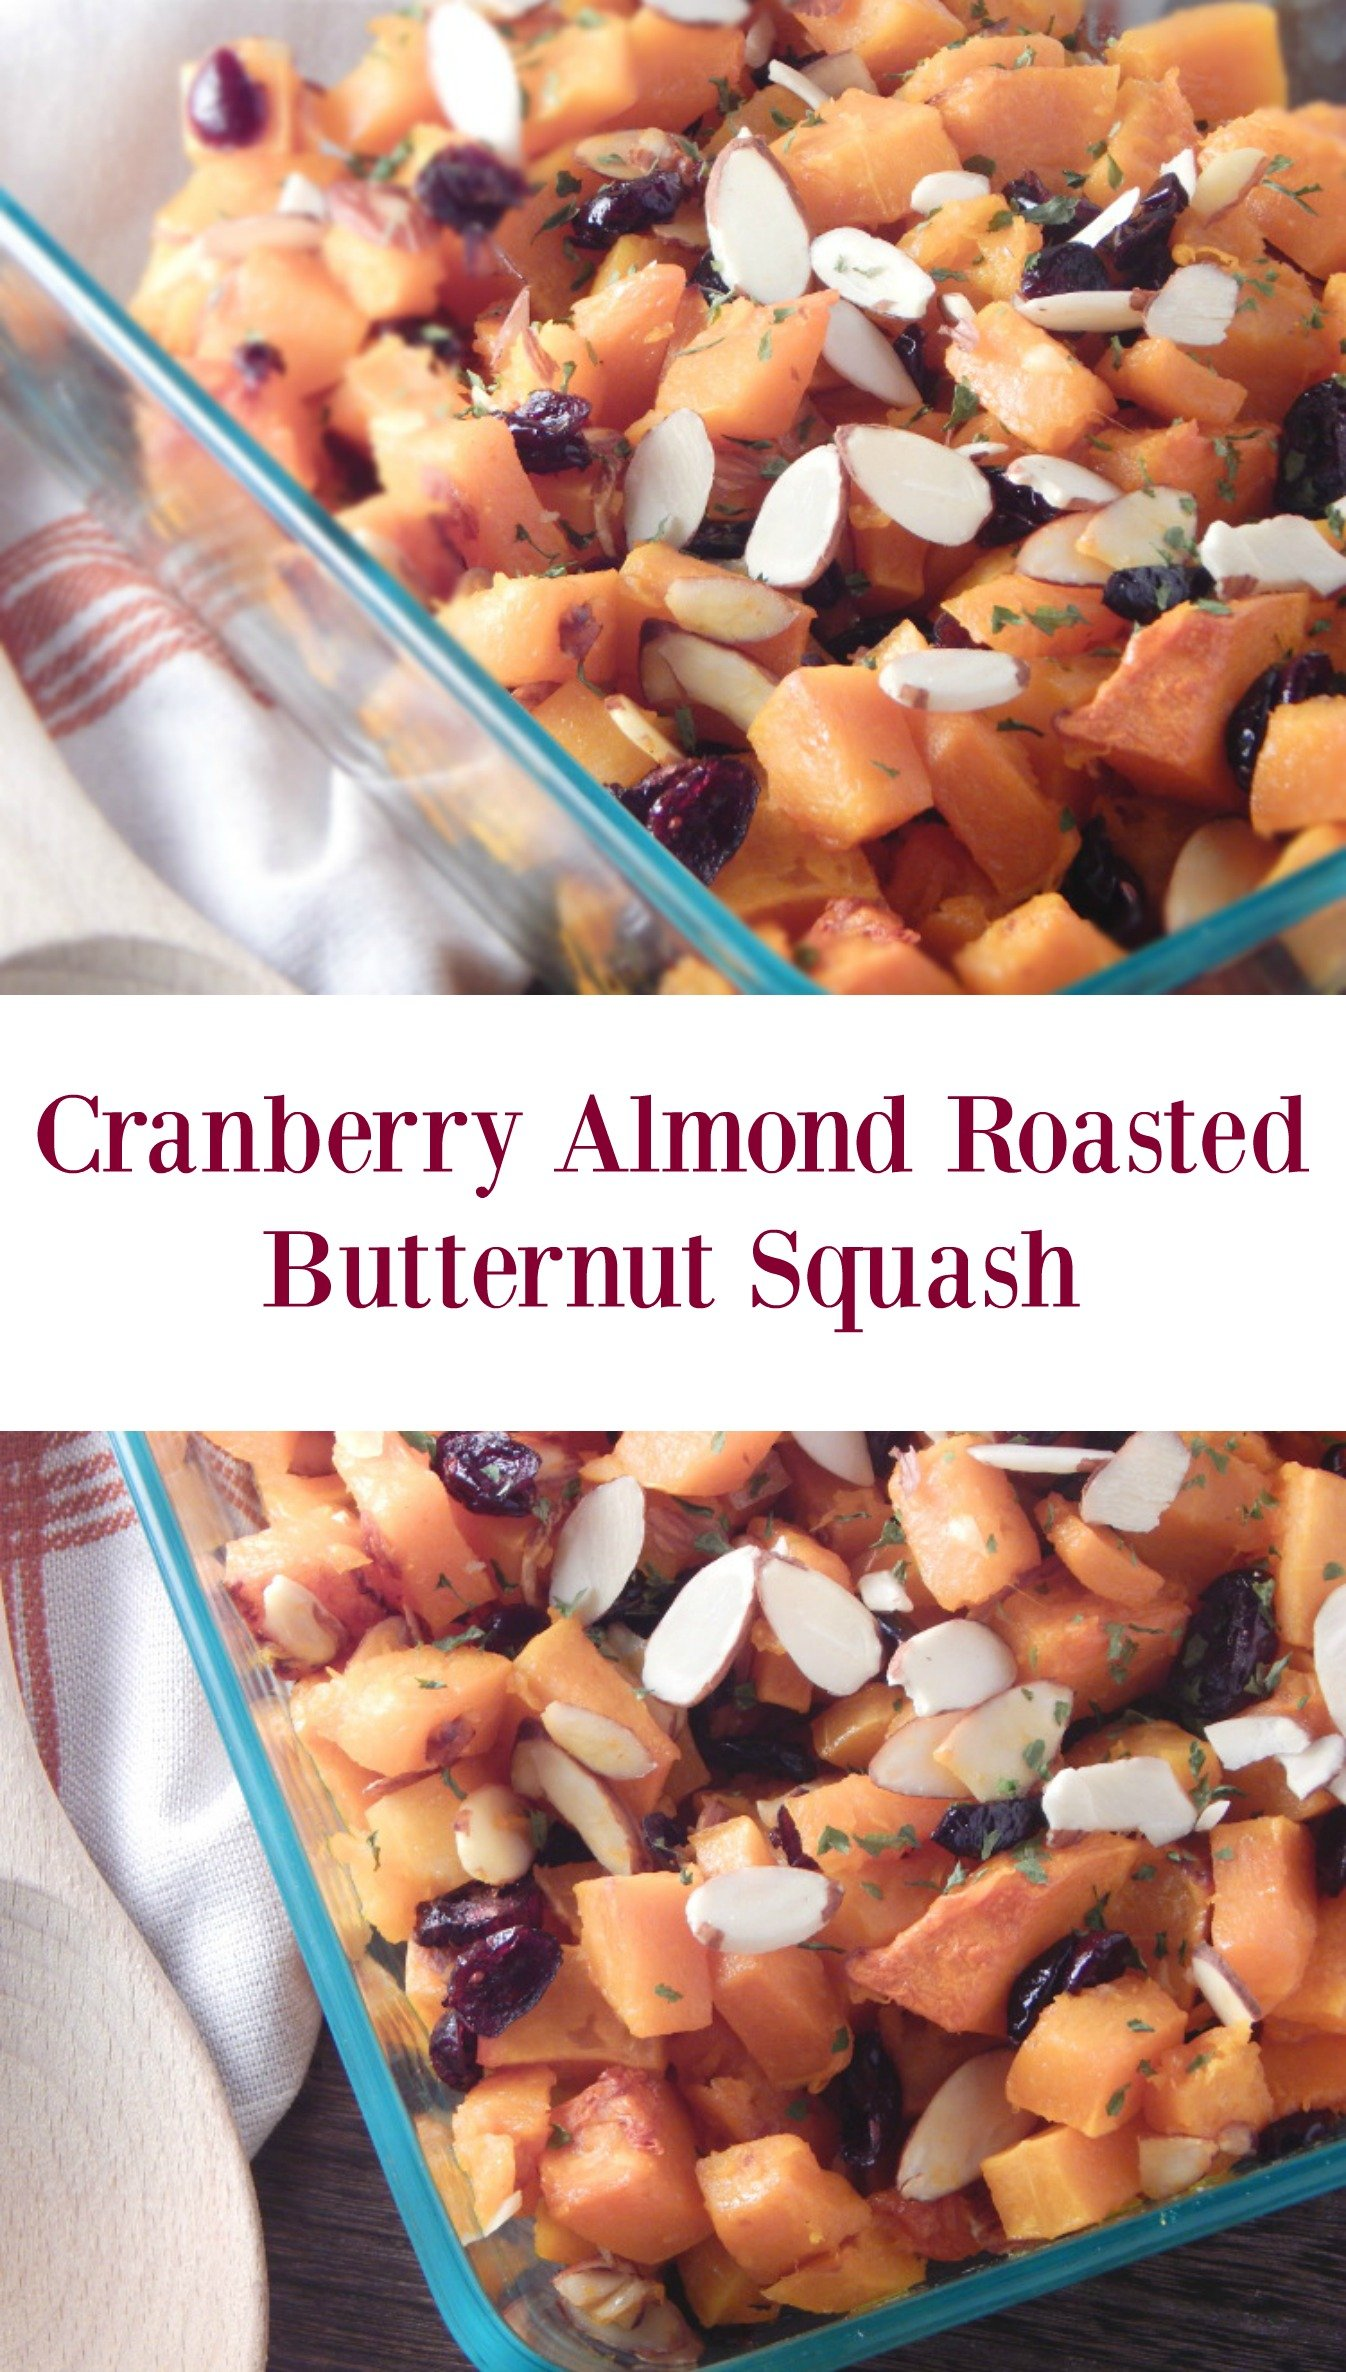 Cranberry Almond Roasted Butternut Squash